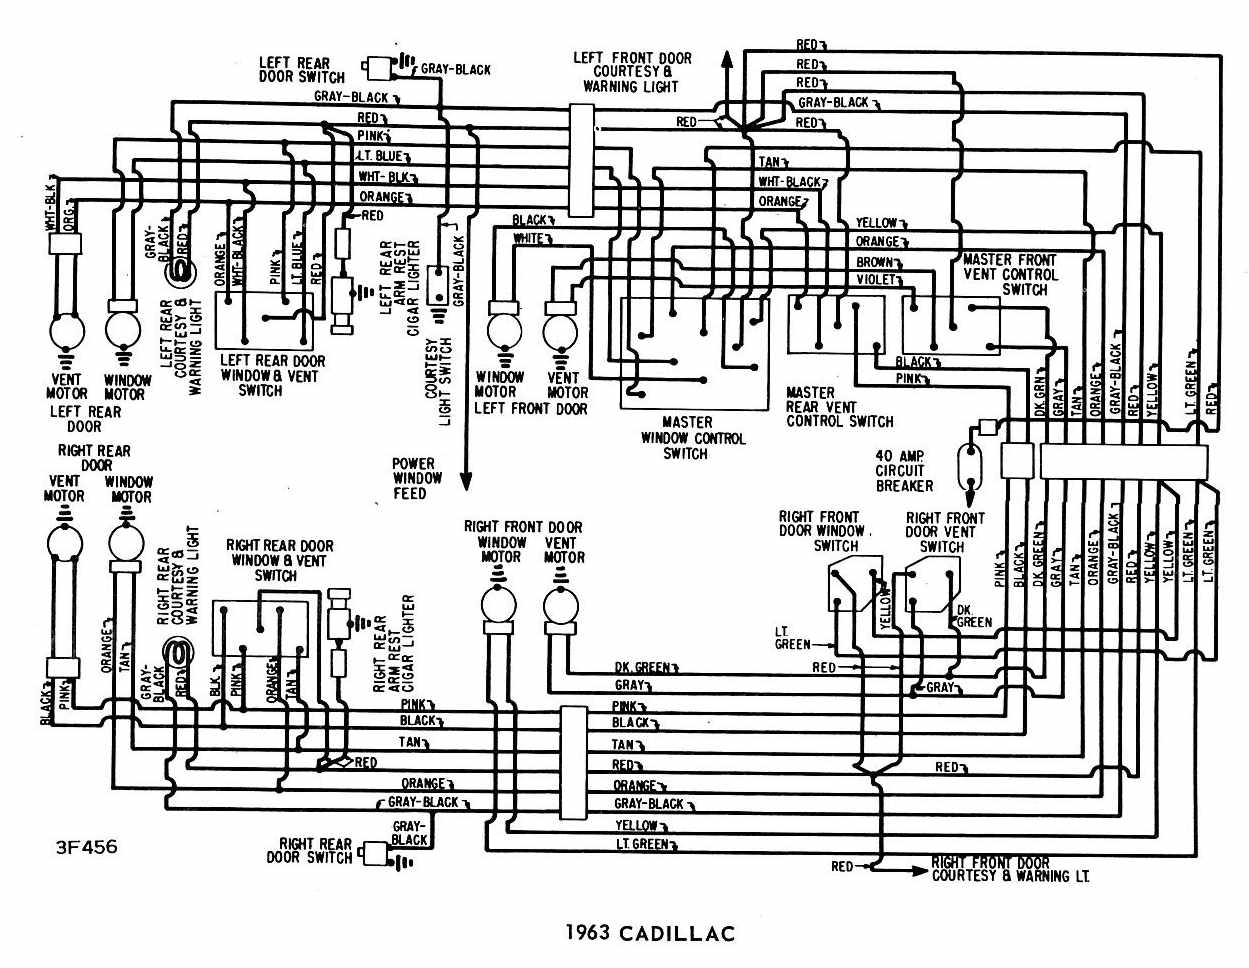 cadillac 1963 windows wiring diagram all about wiring diagrams rh diagramonwiring blogspot com 1964 Cadillac Vacuum Diagram 1963 cadillac coupe deville wiring diagram